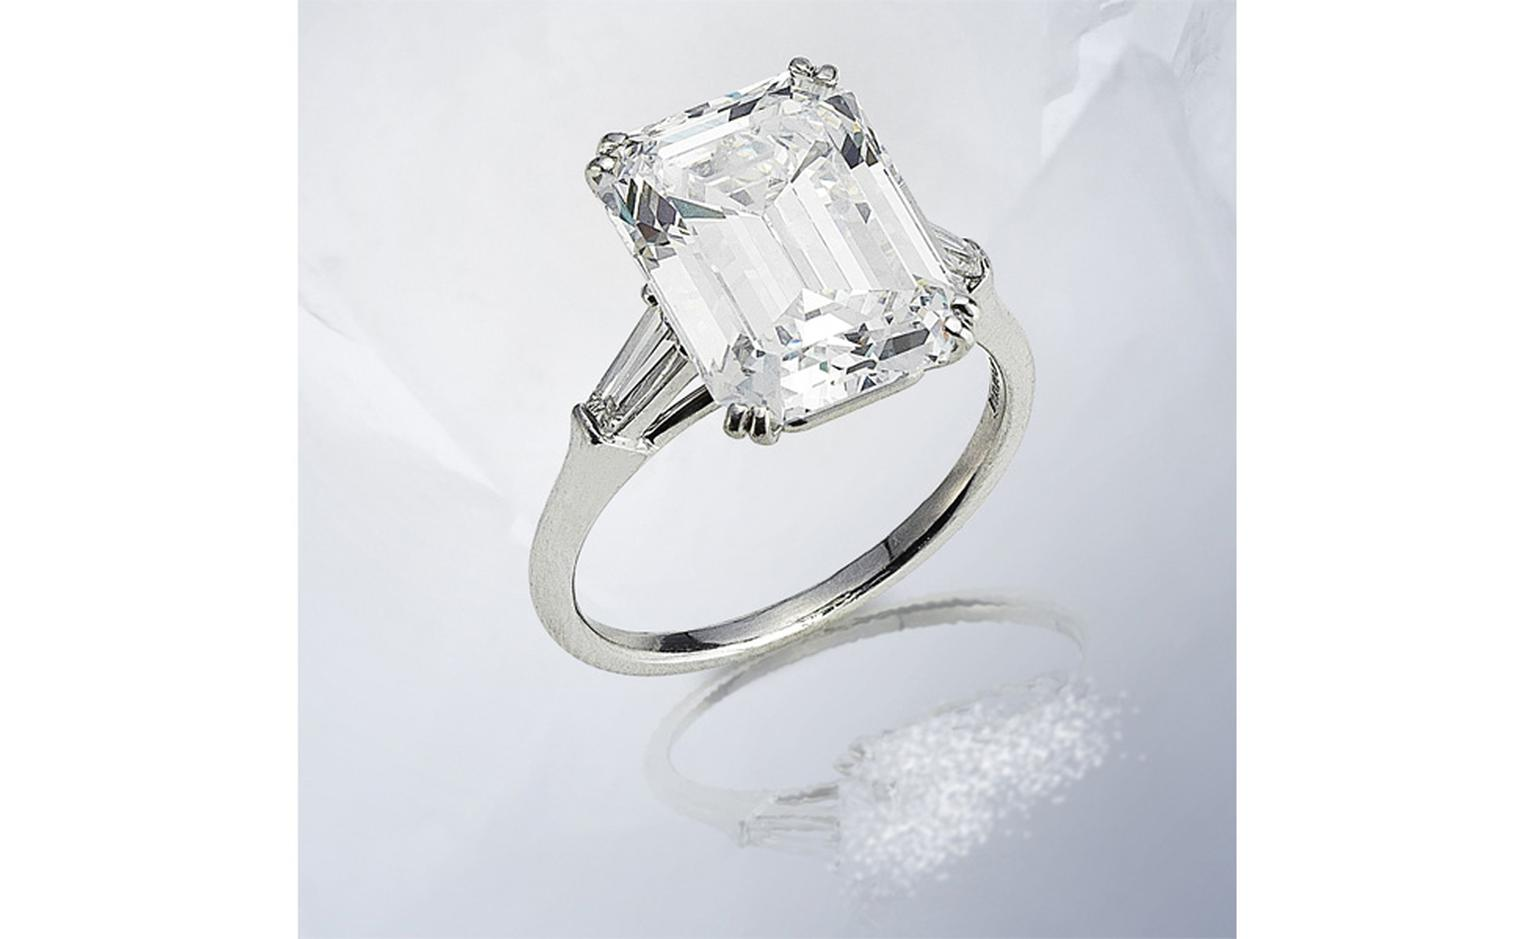 Lot 198. 198 A diamond single-stone ring, by Harry Winston. Estimate £120,000-150,000.  SOLD FOR £265,250.